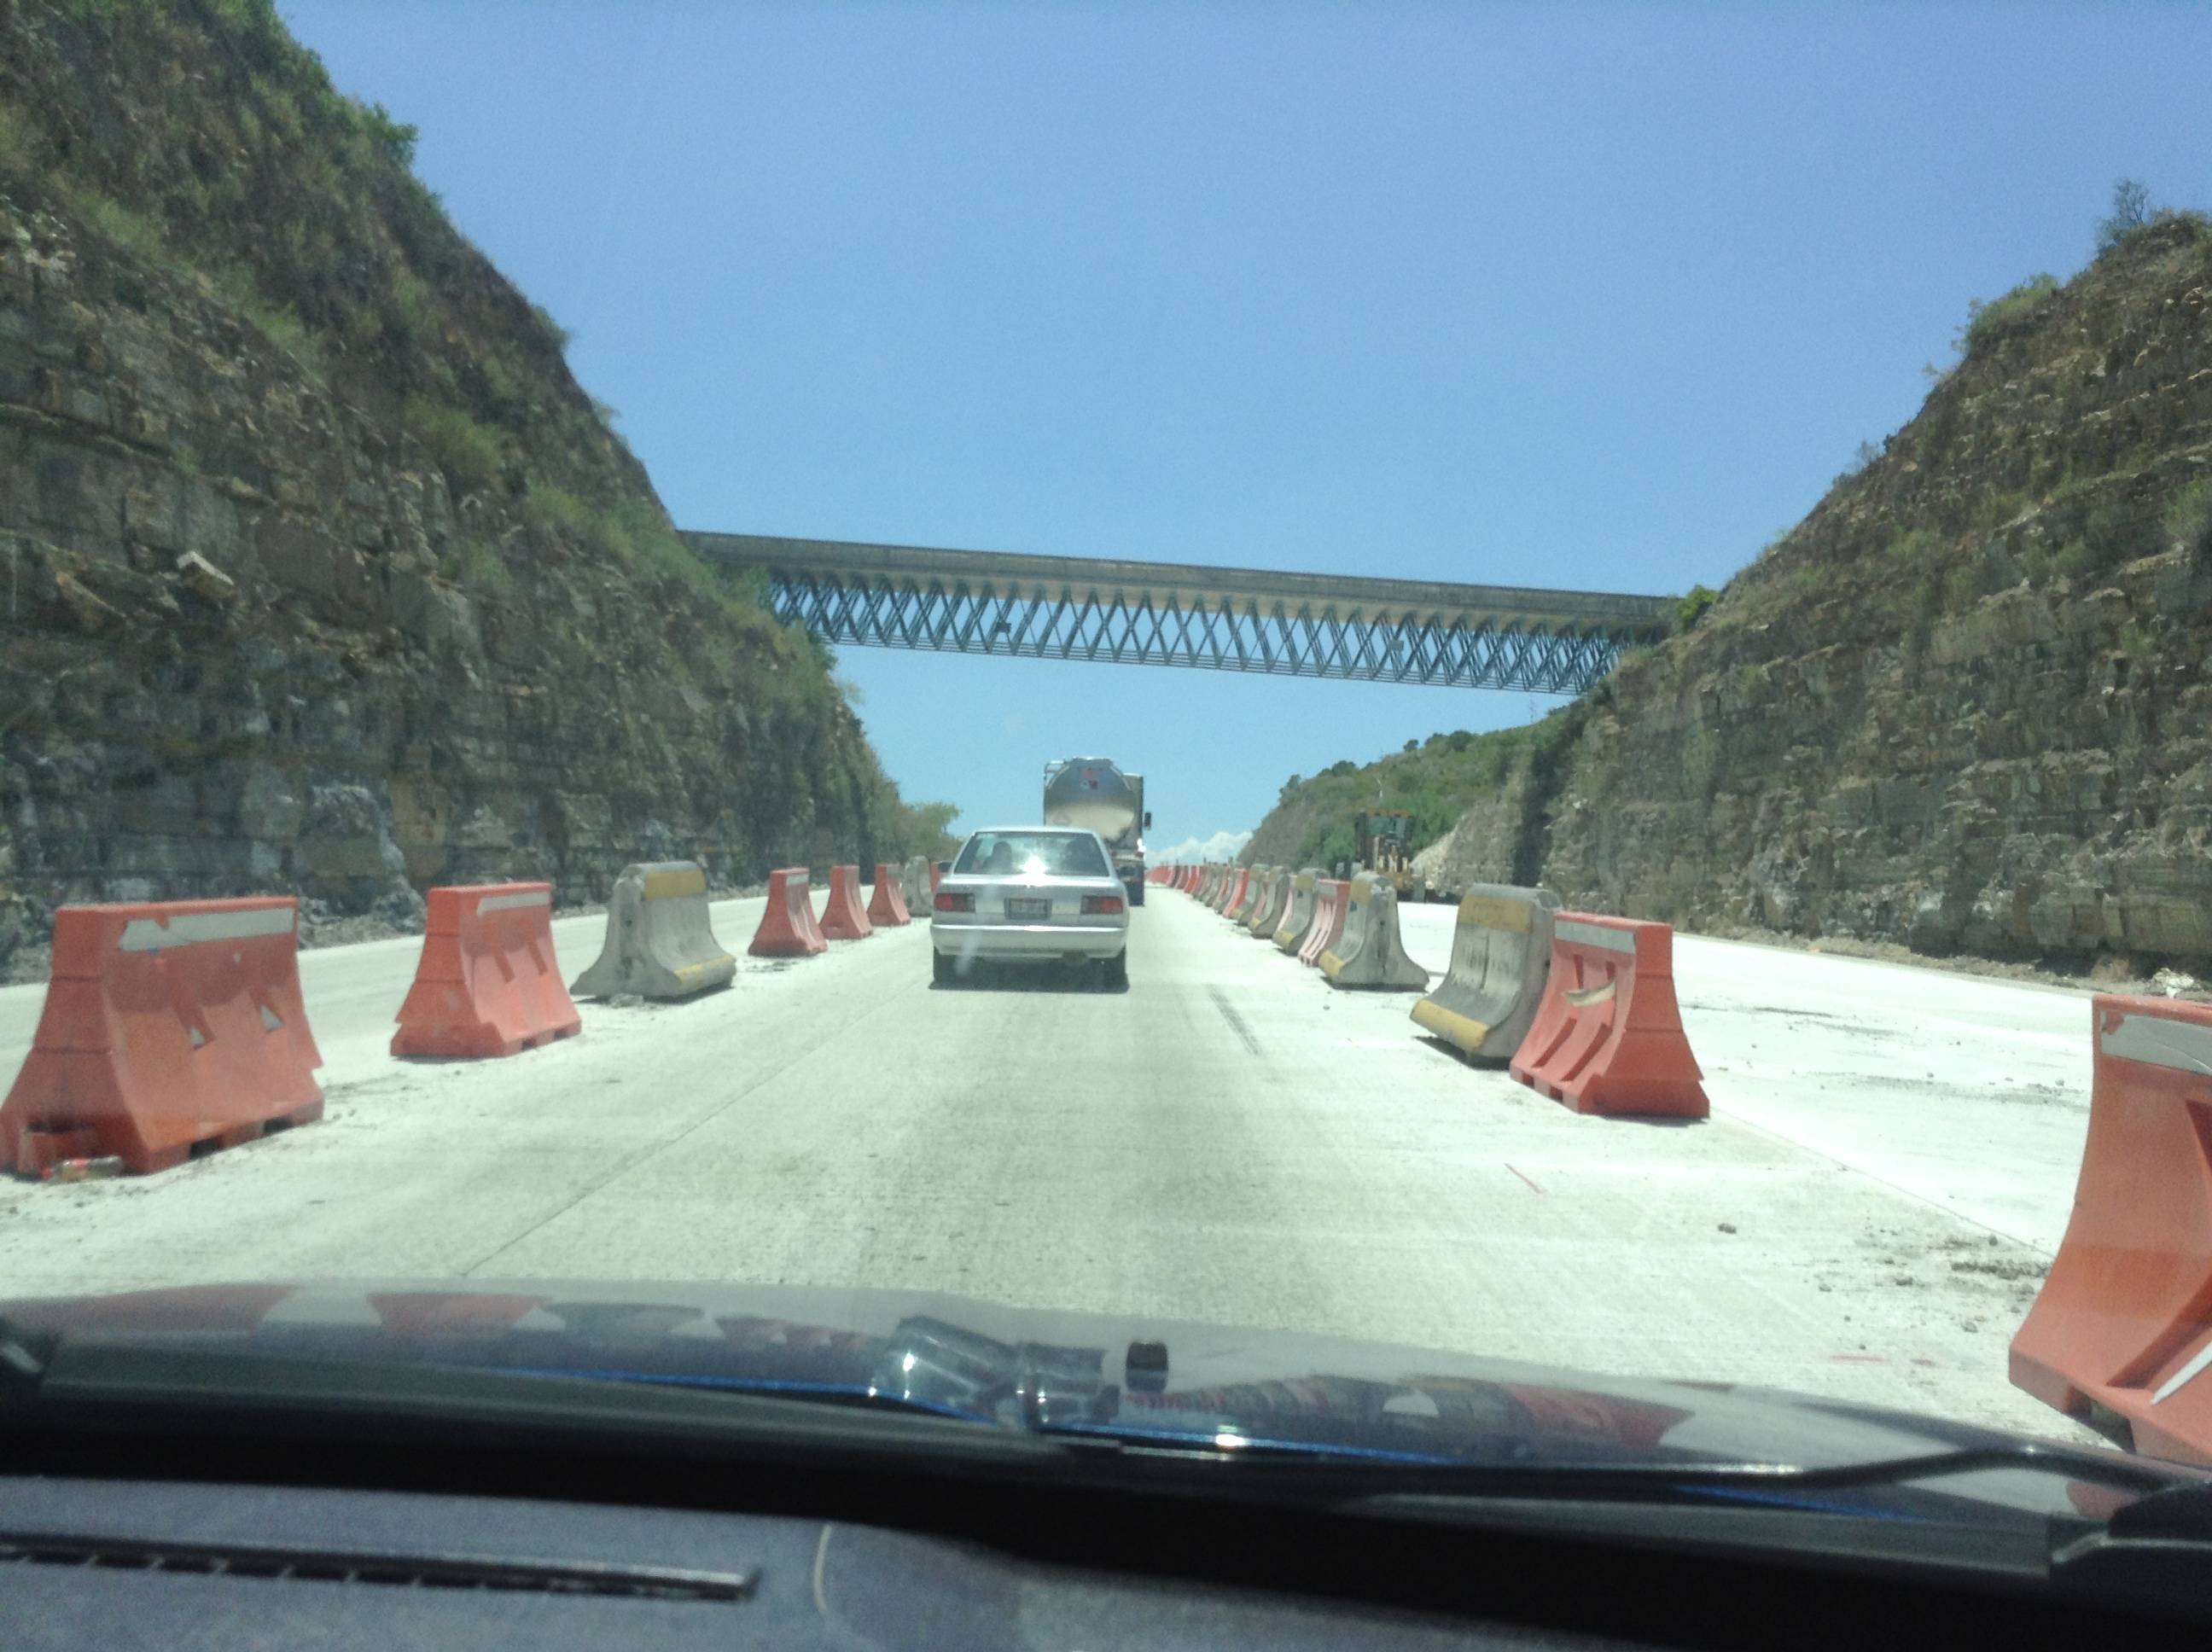 Driving through Hills/Mountains and construction.